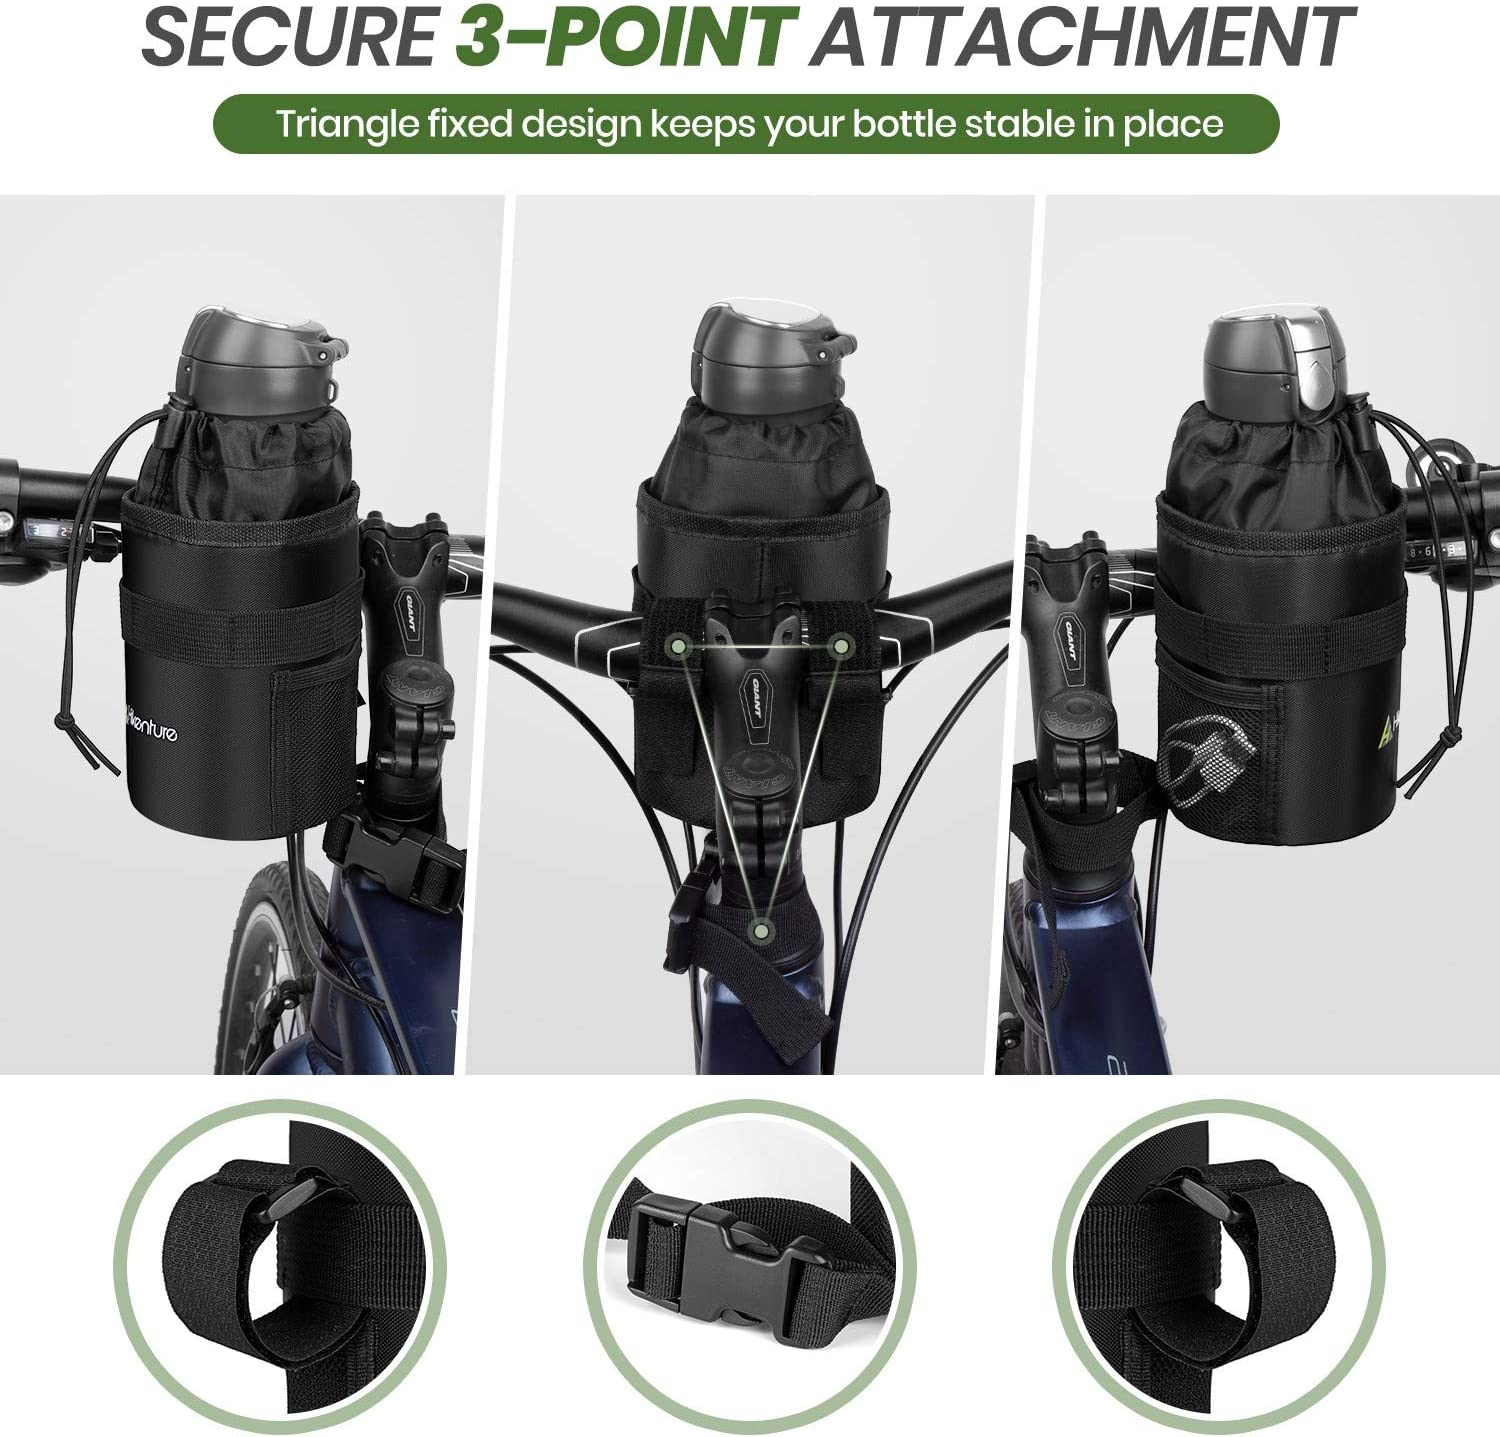 Anti-Tear Drink Holder for Bicycle,Motorcycle,Pushchair,Wheelchair Hikenture Bike Water Bottle Holder Bag Insulated Water Bottle Carrier with Side Pockets /& Straps Waterproof Cup Holder Bike Bag